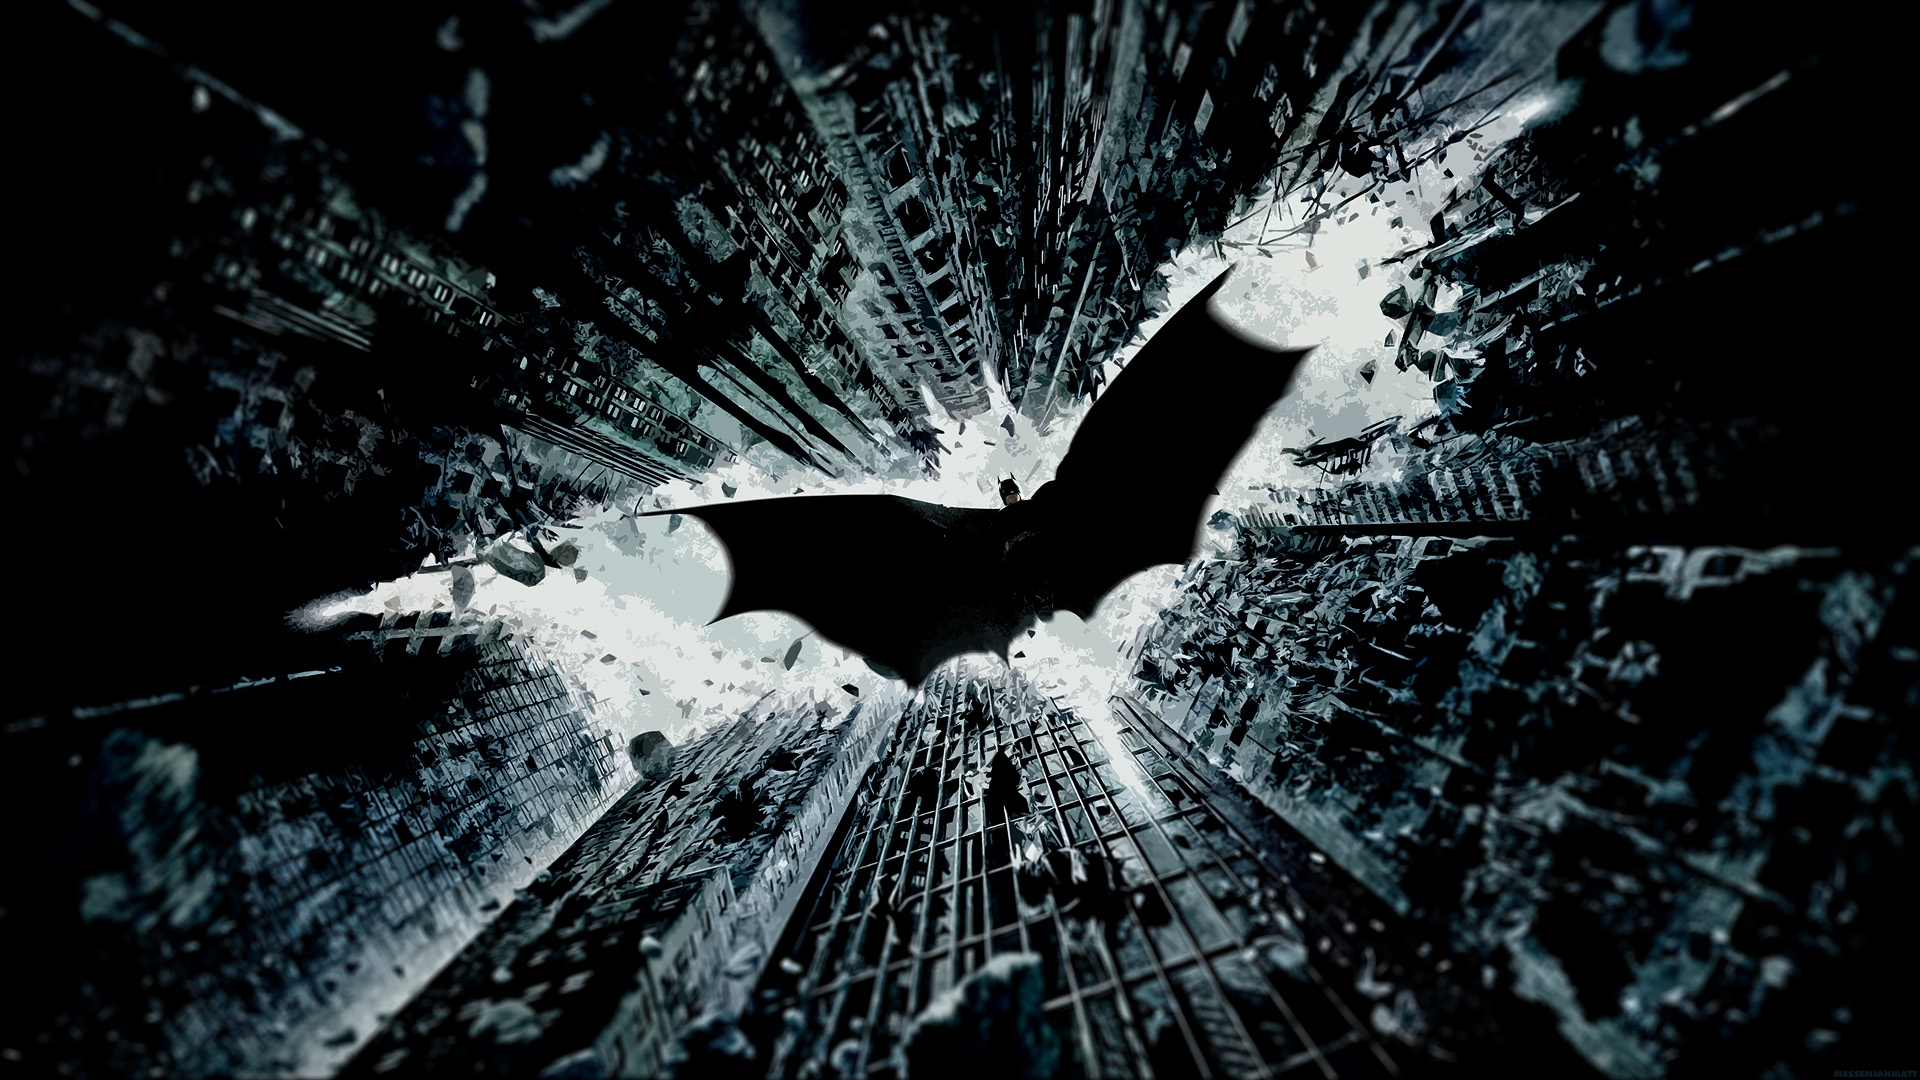 Cool Batman Wallpapers Best Images Collections HD For 1920x1080